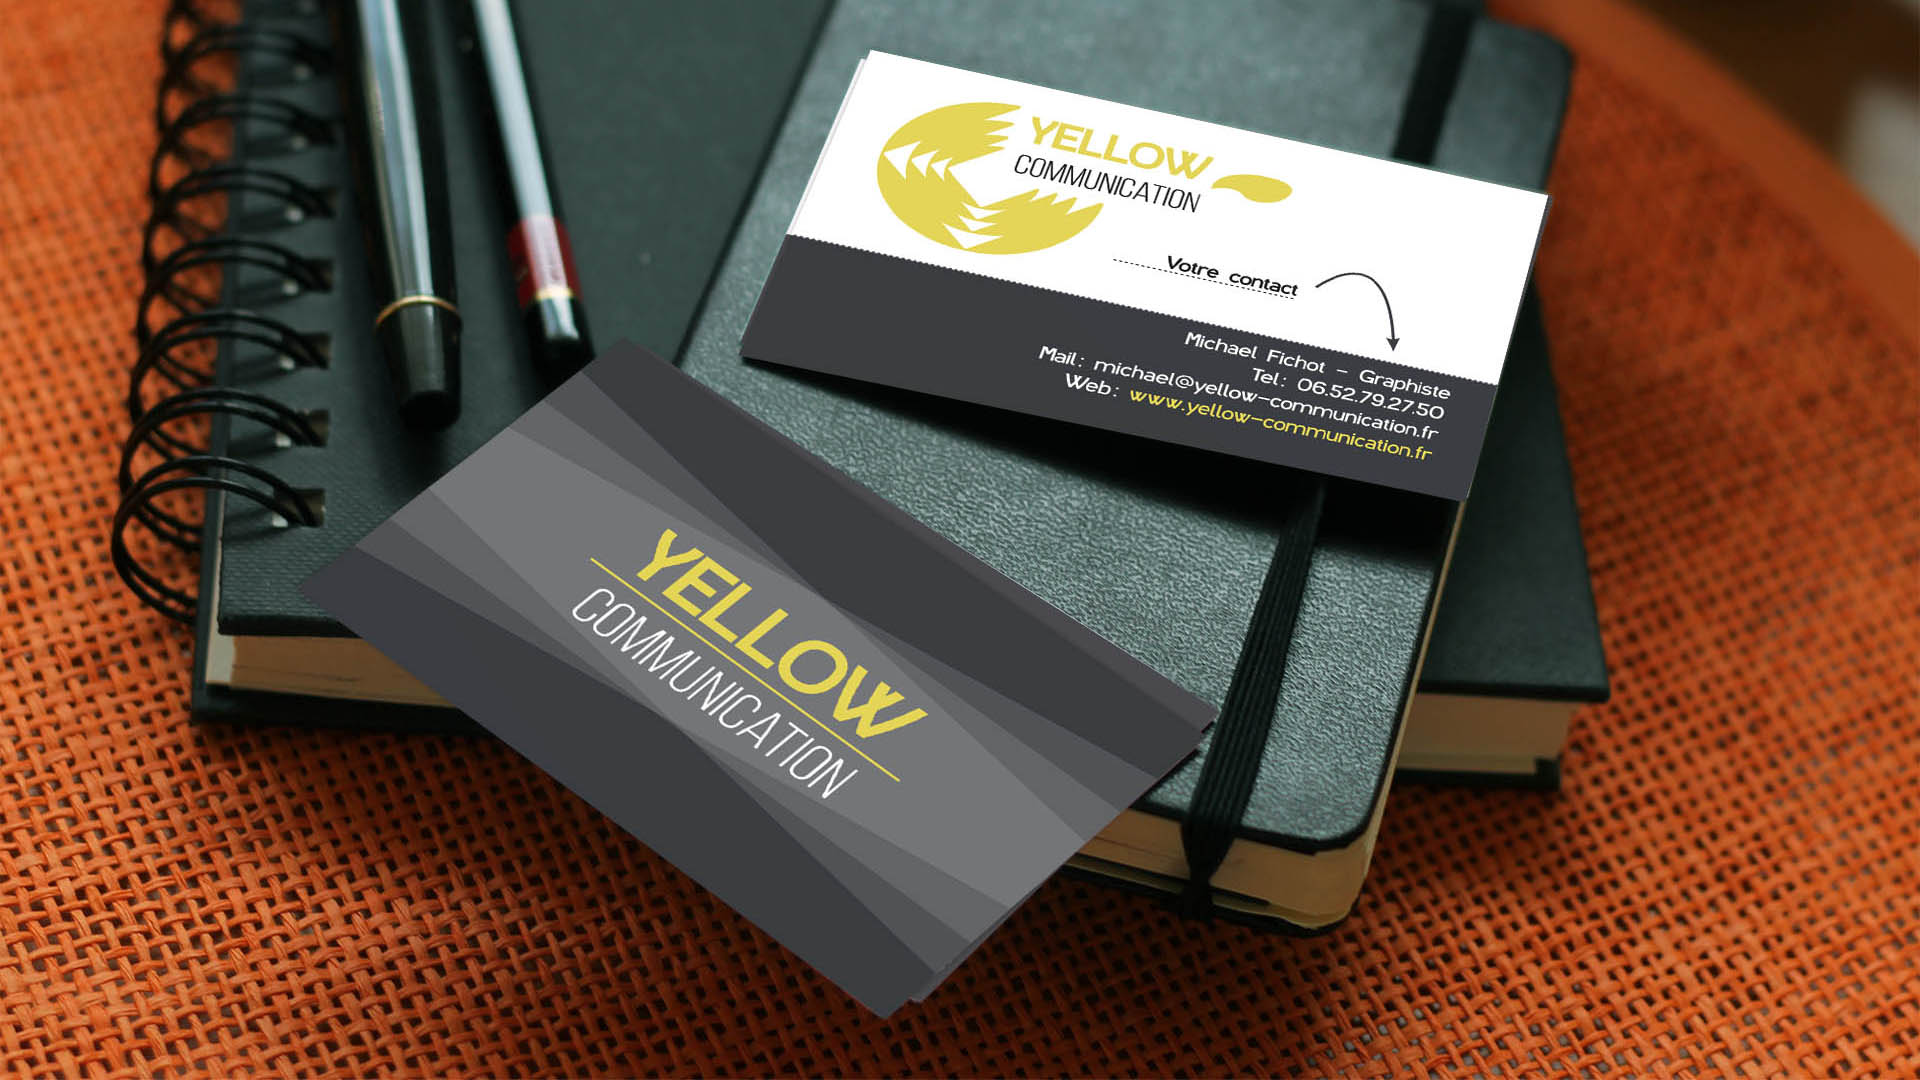 carte de visite Yellow Communication